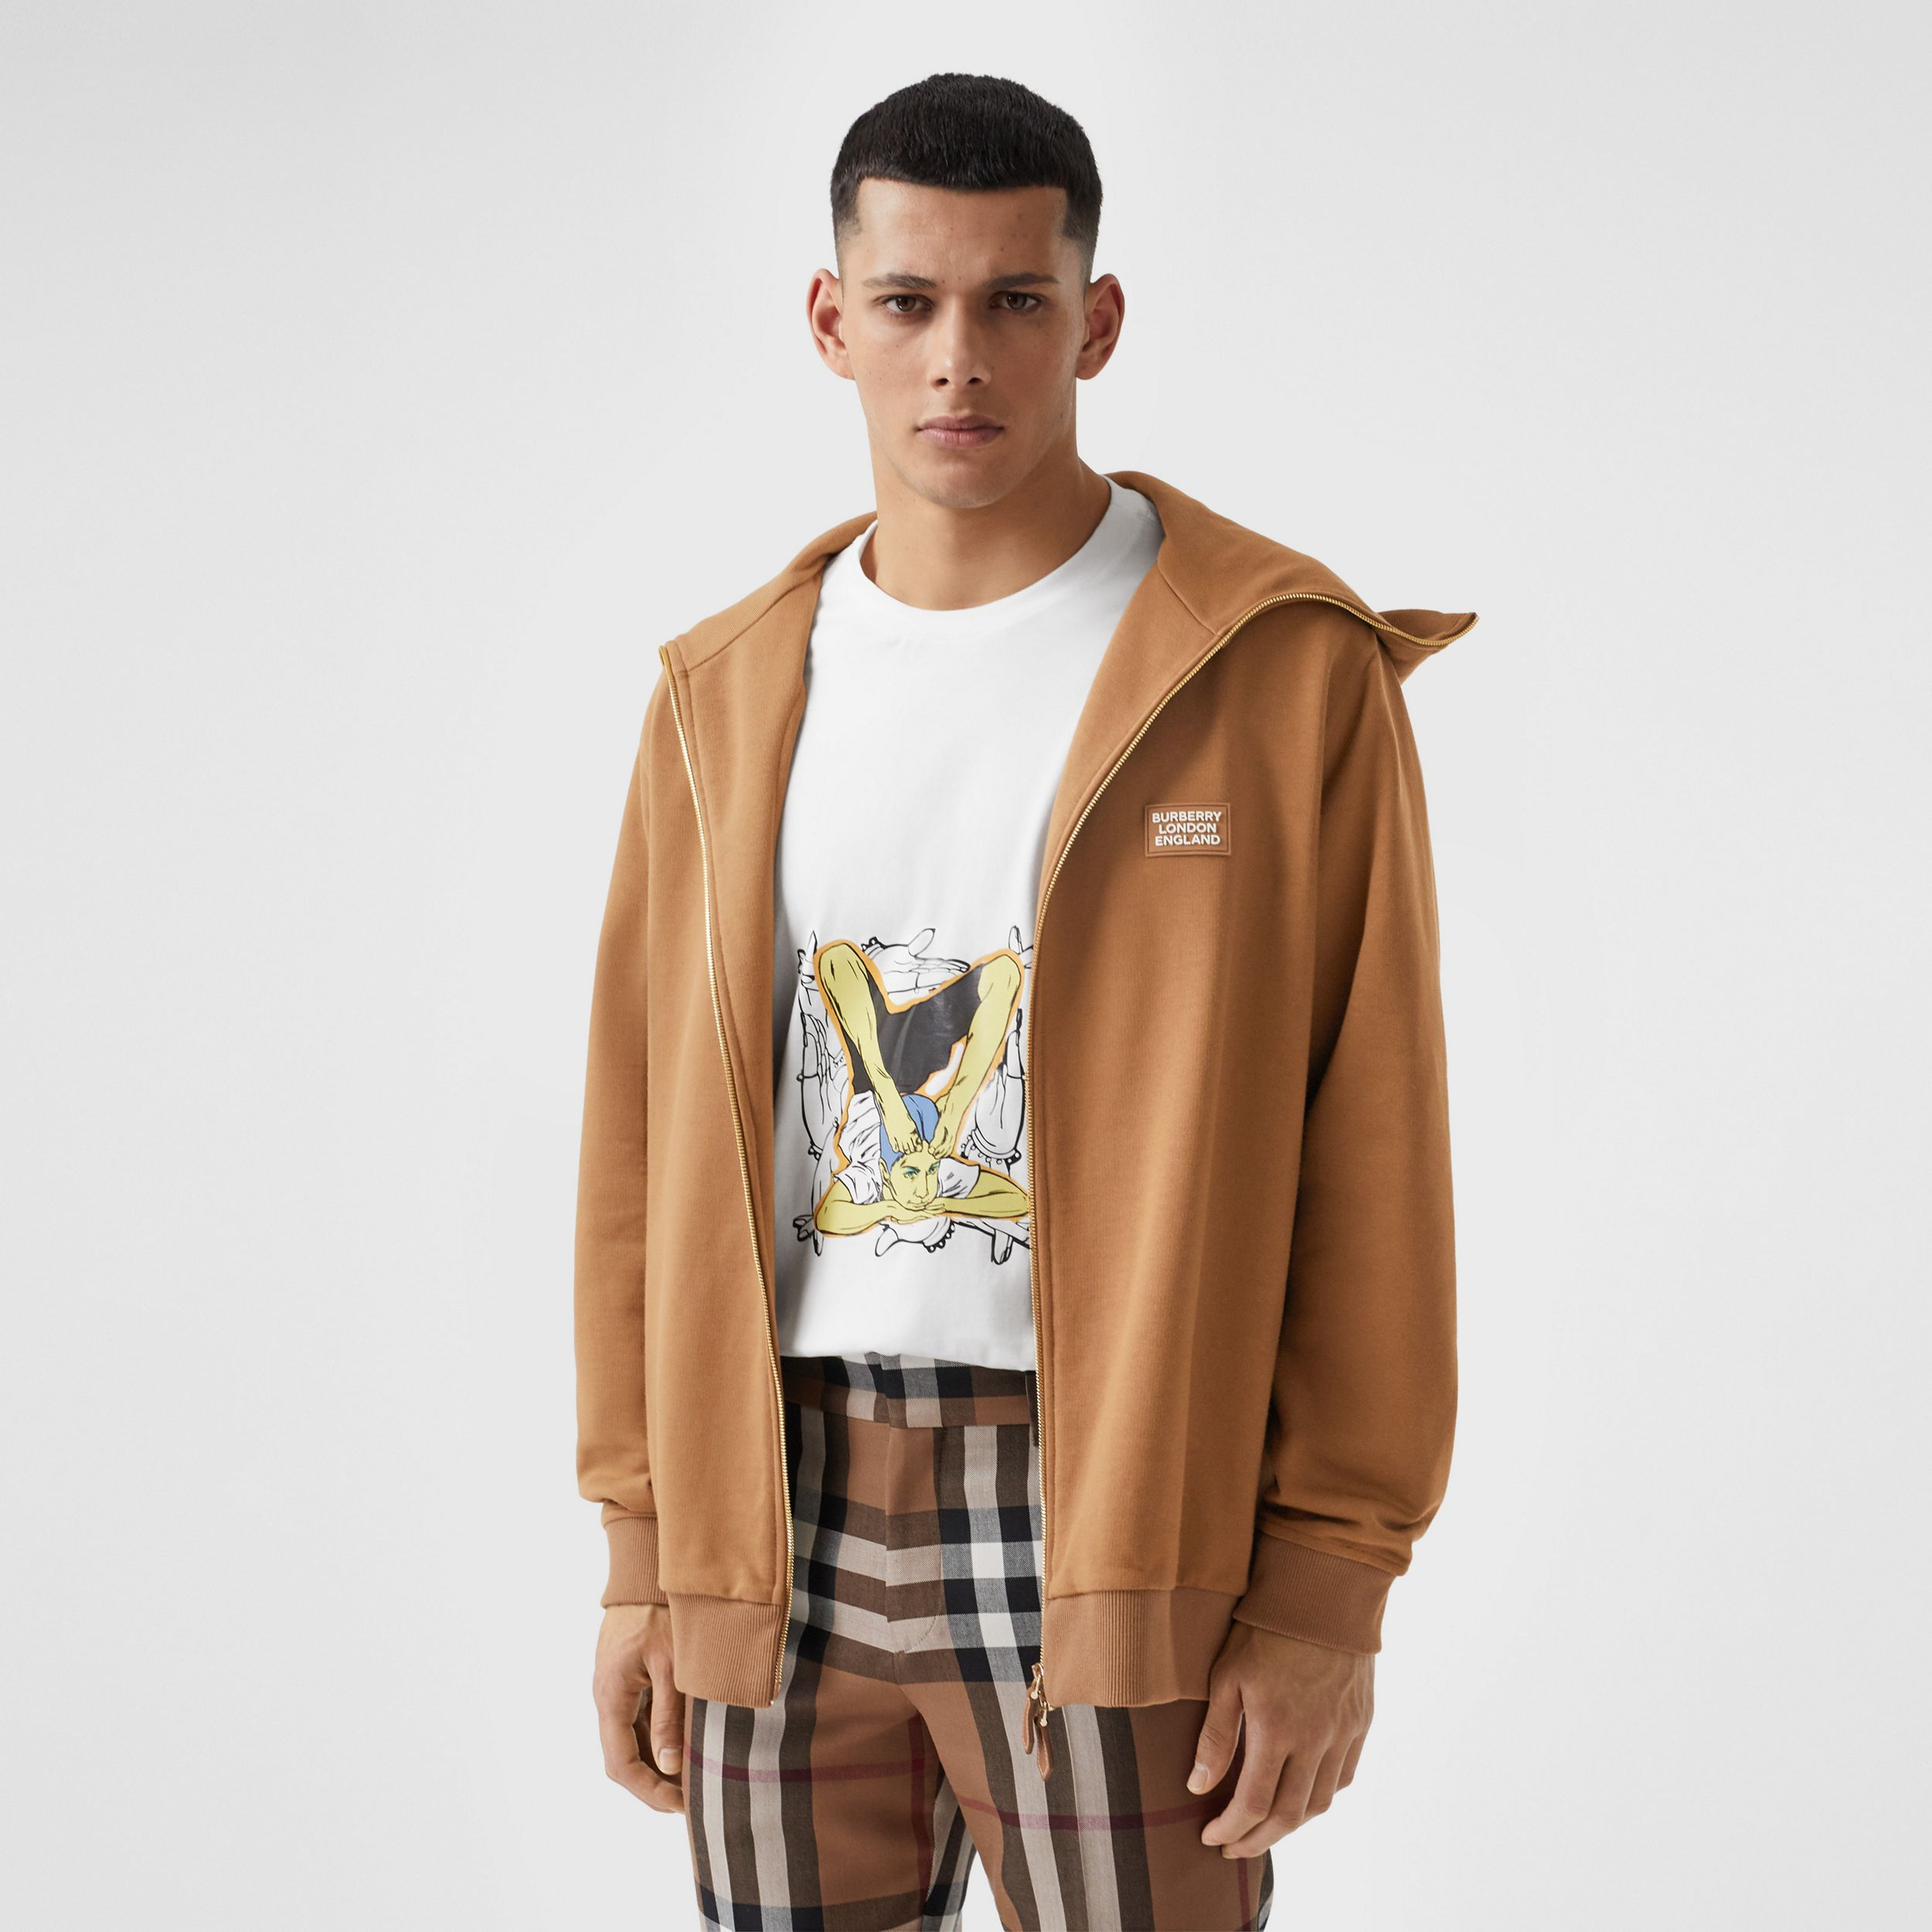 Logo Appliqué Cotton Funnel Neck Top in Fawn - Men | Burberry - 1